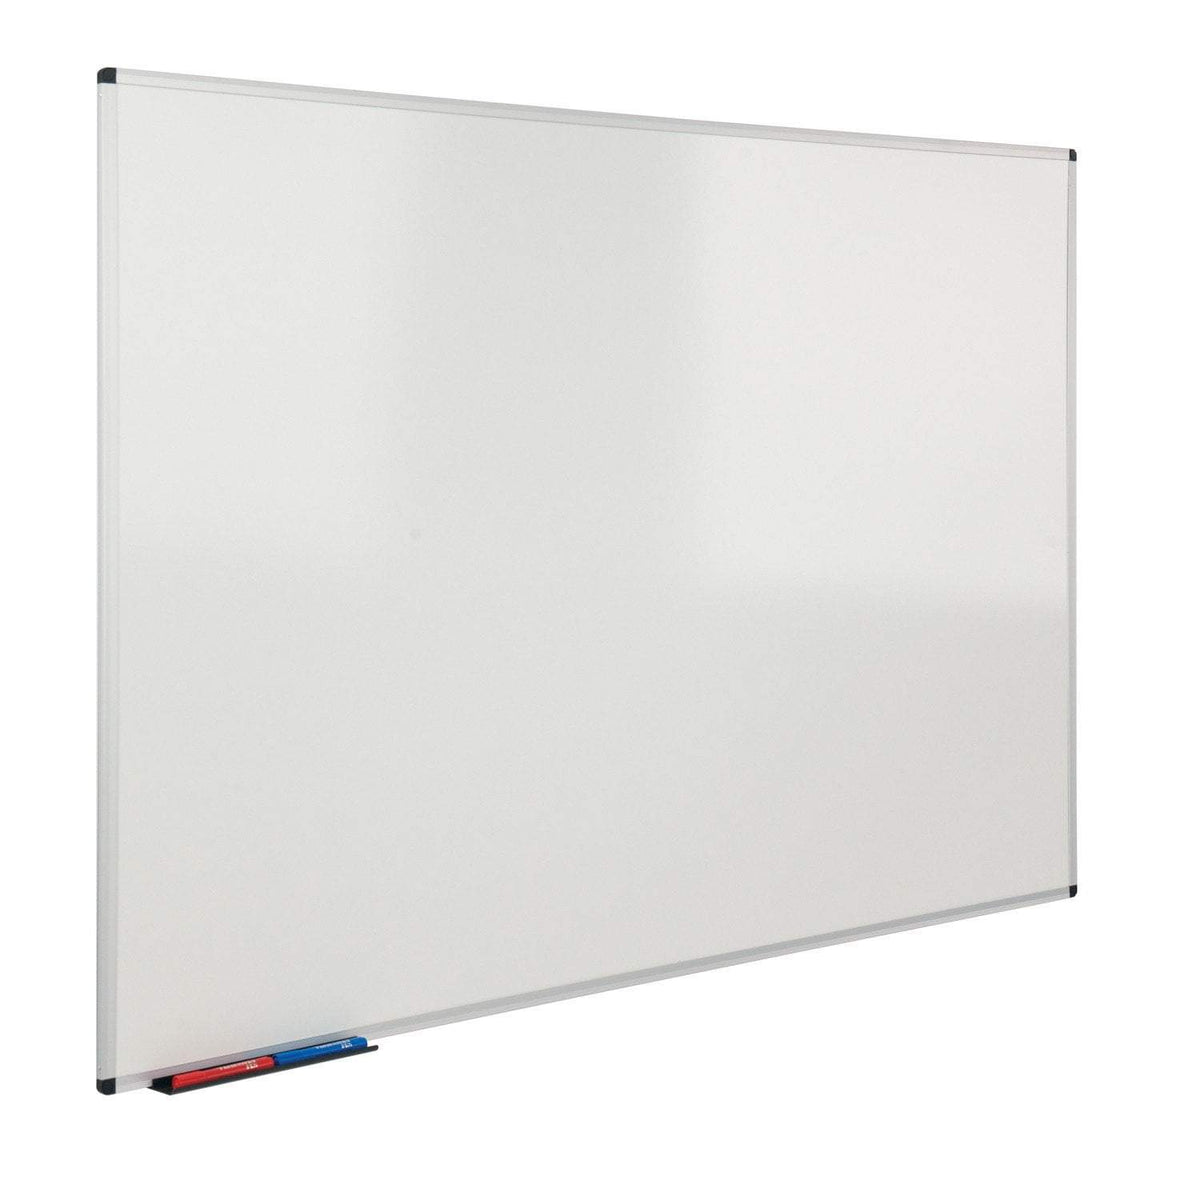 whiteboards h450 x w600mm Magnetic Whiteboards h450 x w600mm